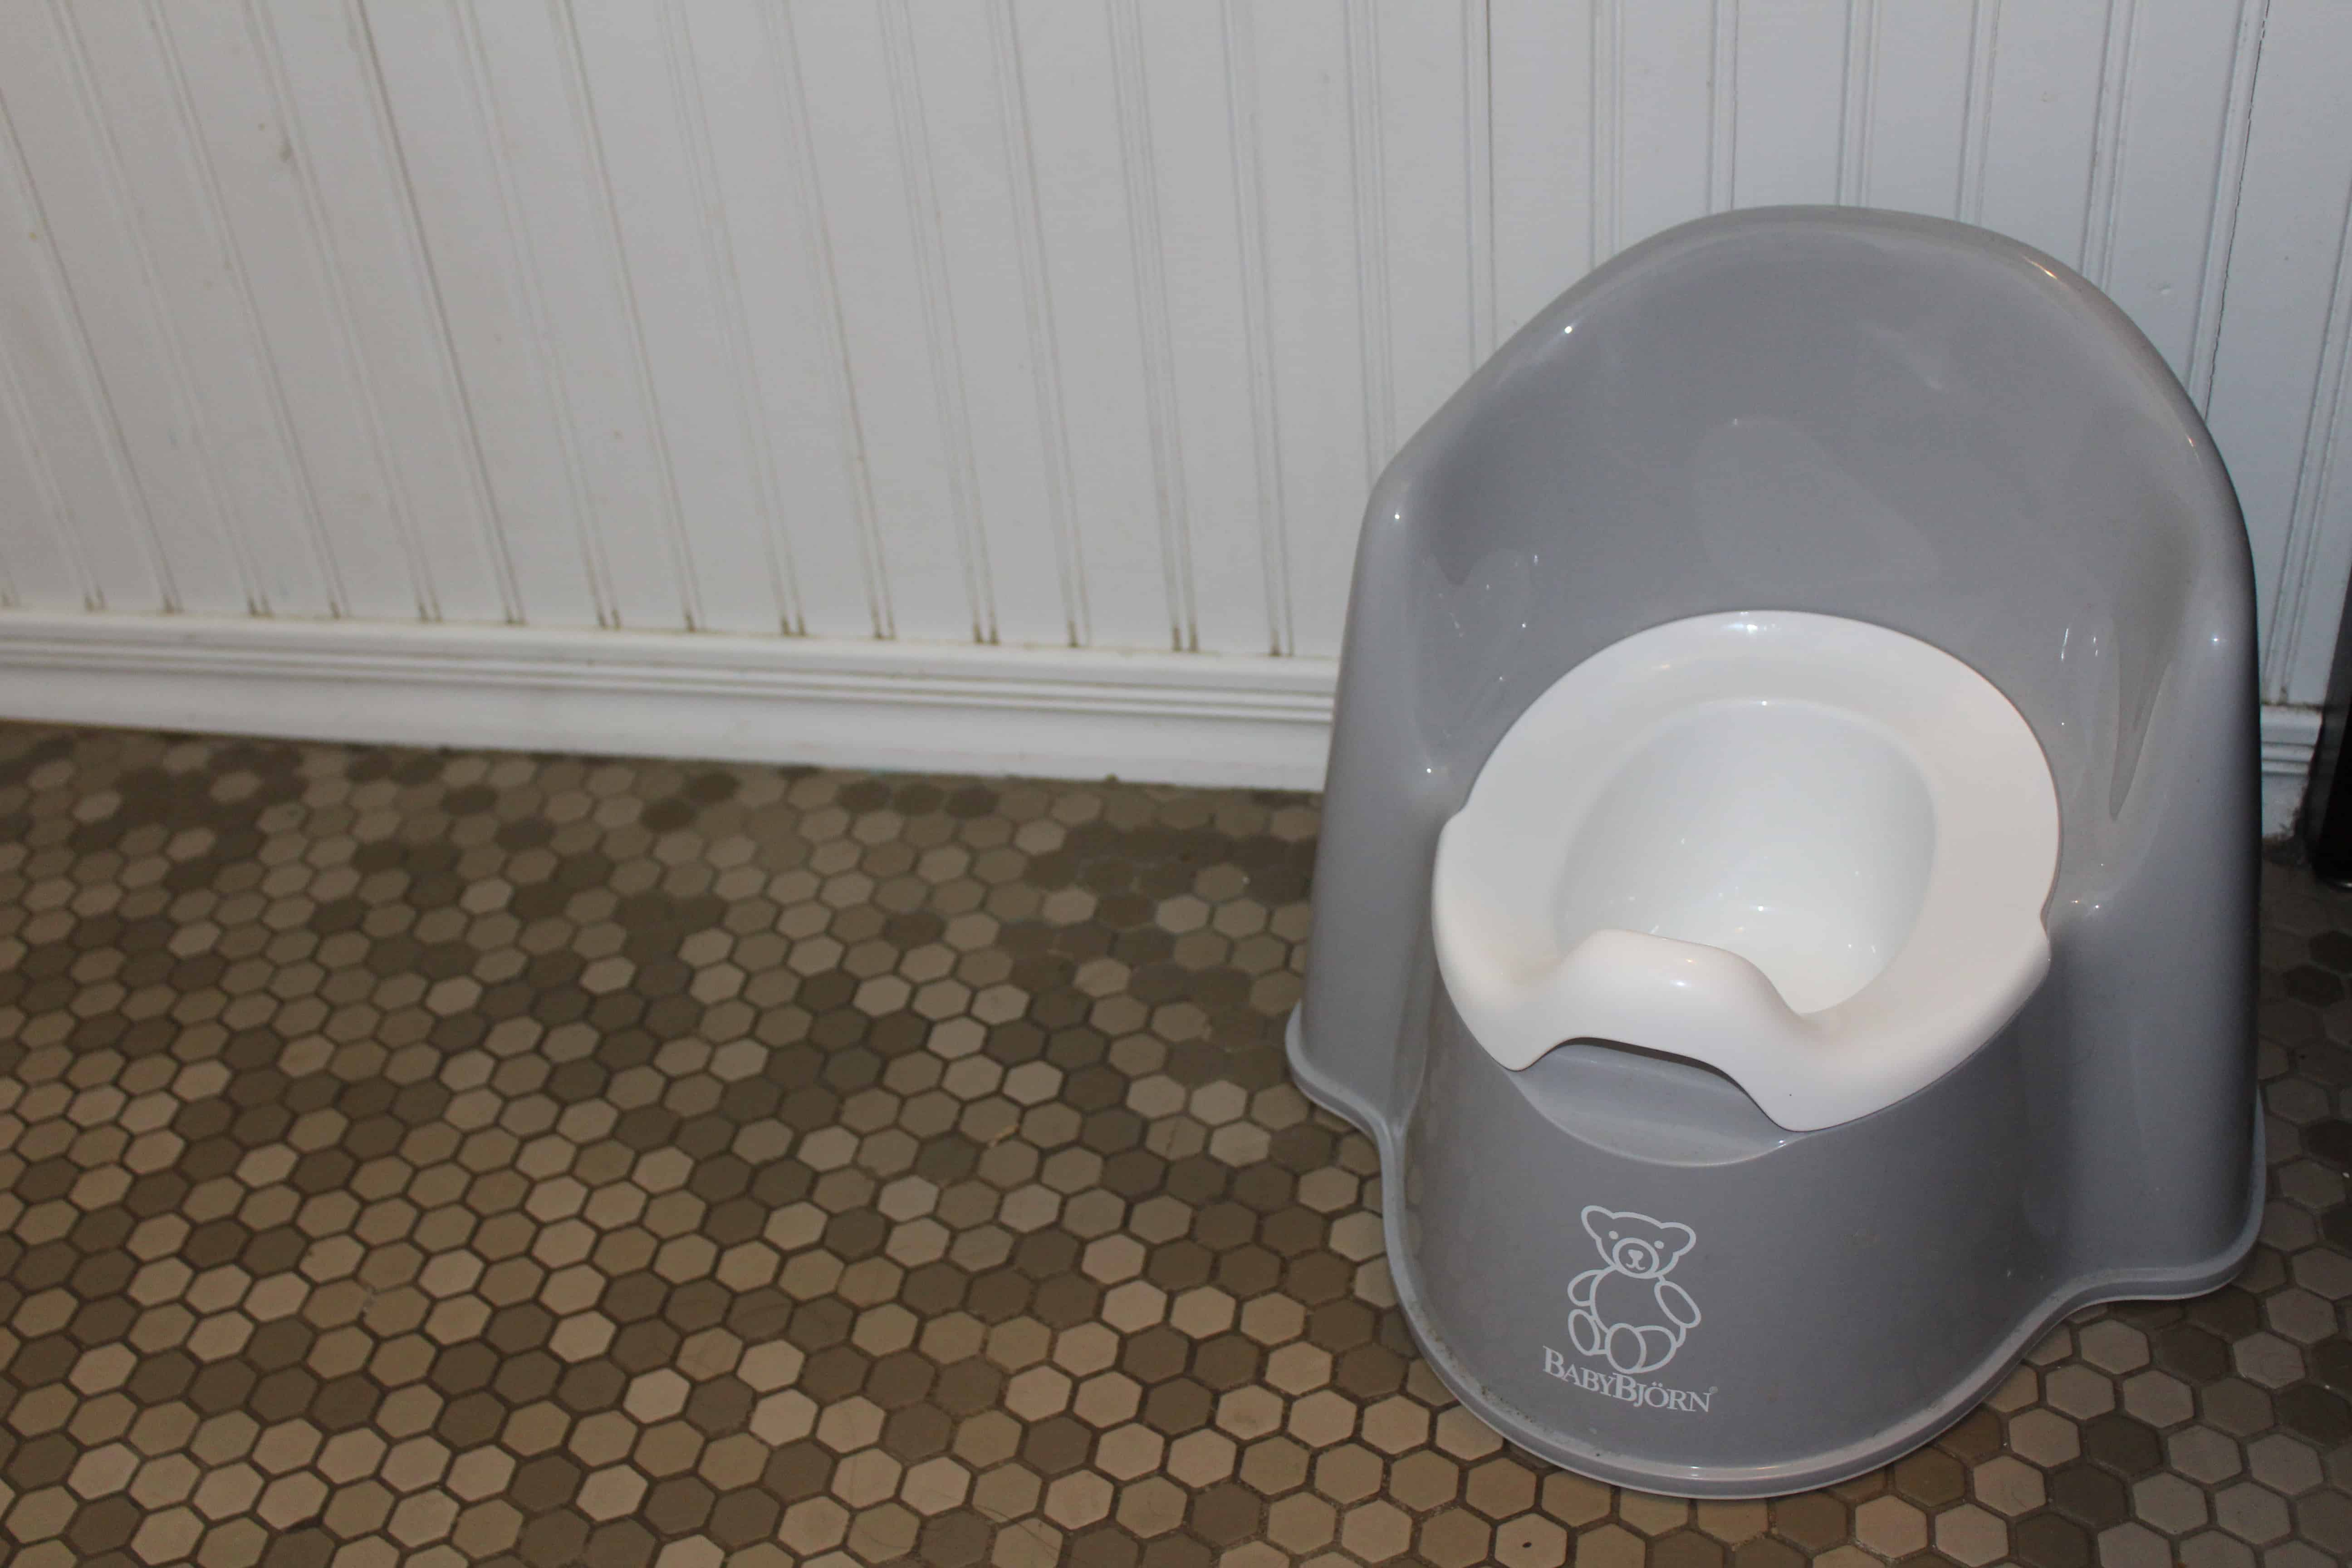 Gray toddler potty training seat in the corner on tile.